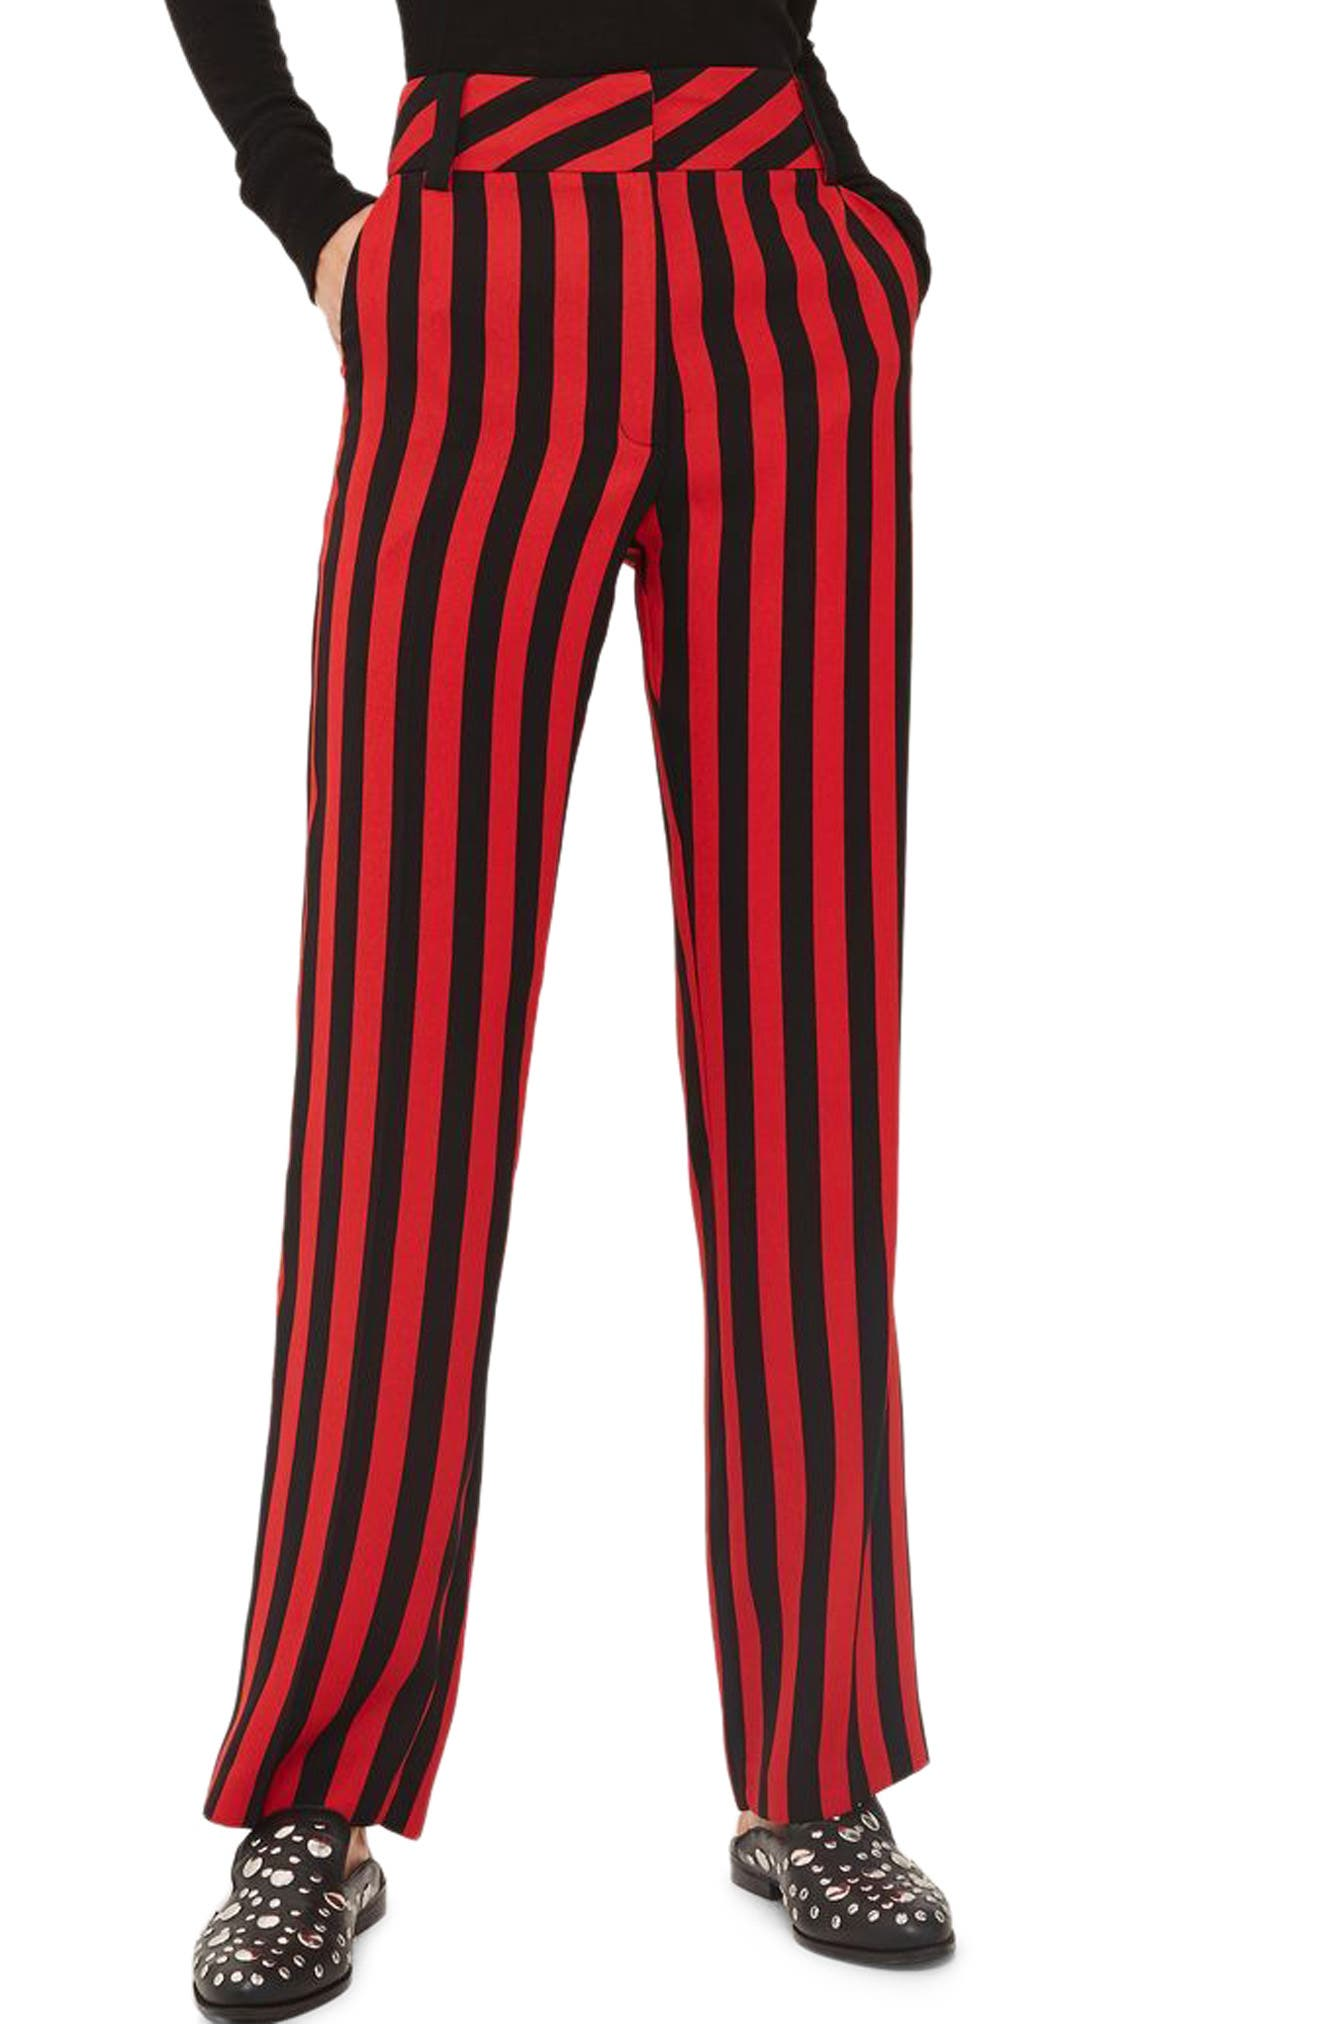 Humbug Stripe Trousers,                         Main,                         color, Red Multi